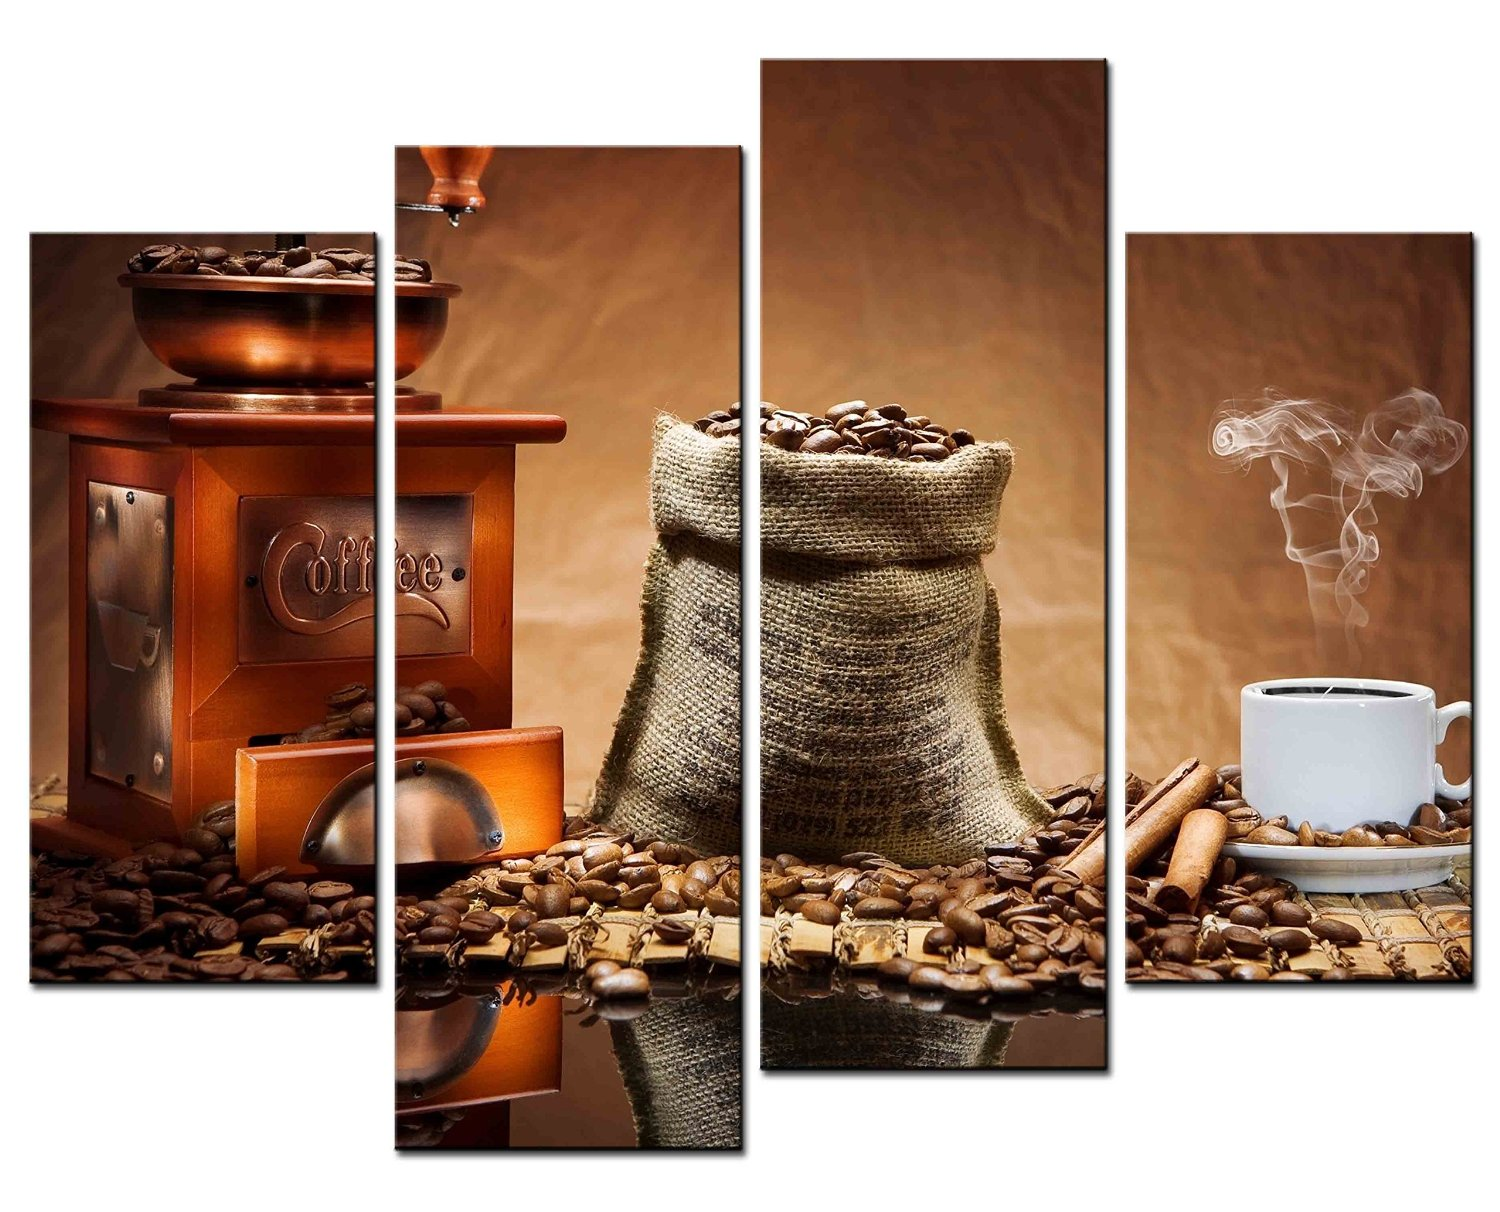 SmartWallArt - Coffee Paintings Wall Art Steaming Coffee and Coffee Beans Grinder 4 Panel Picture Print on Canvas for Modern Home Decoration